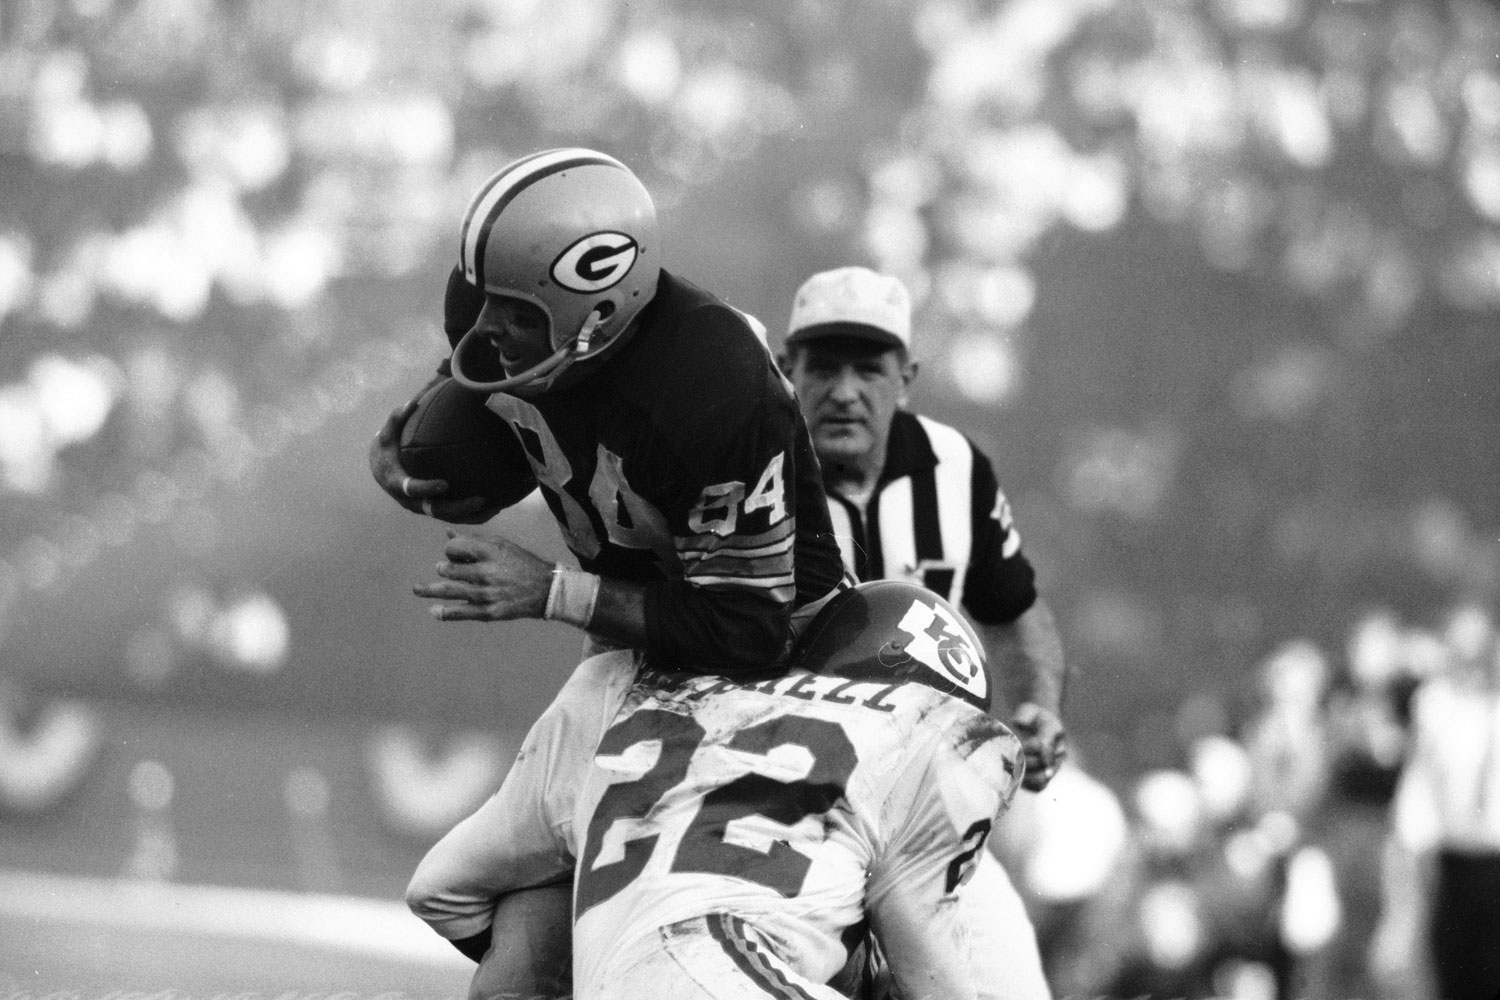 <b>Not published in LIFE.</b> Green Bay receiver Carroll Dale hit by the Chiefs' Willie Mitchell, Super Bowl I, 1967.